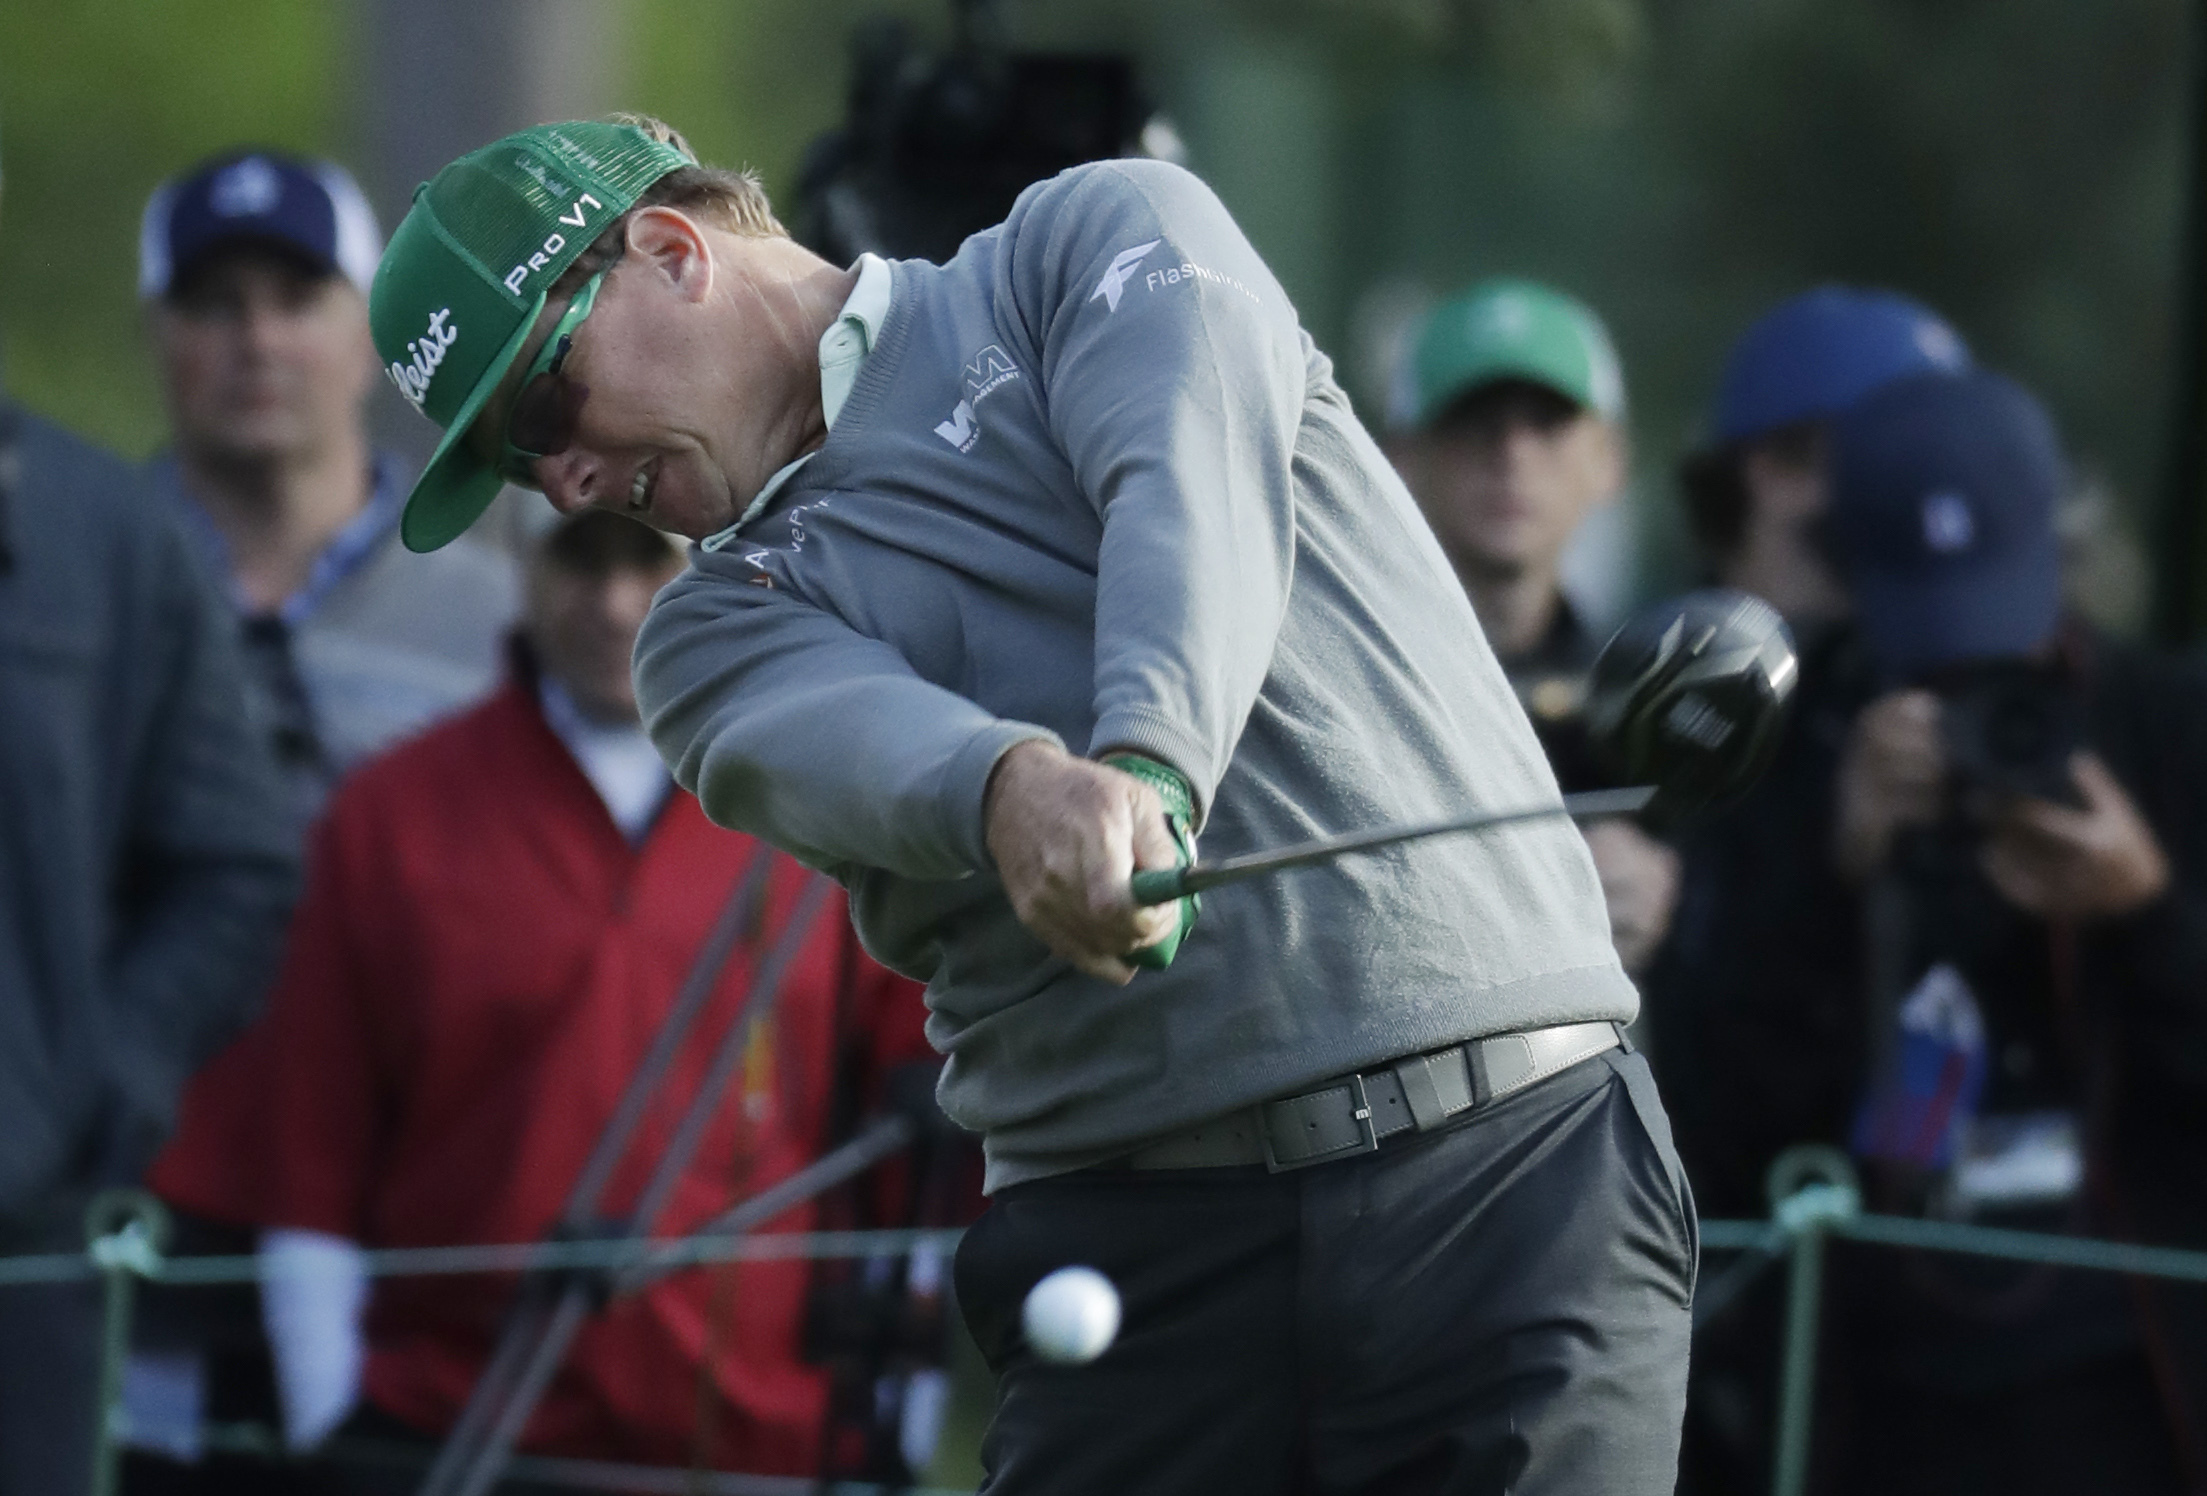 Charley Hoffman hits a drive on the 18th hole during the first round for the Masters golf tournament Thursday, April 6, in Augusta, Ga. (AP Photo/Chris Carlson)